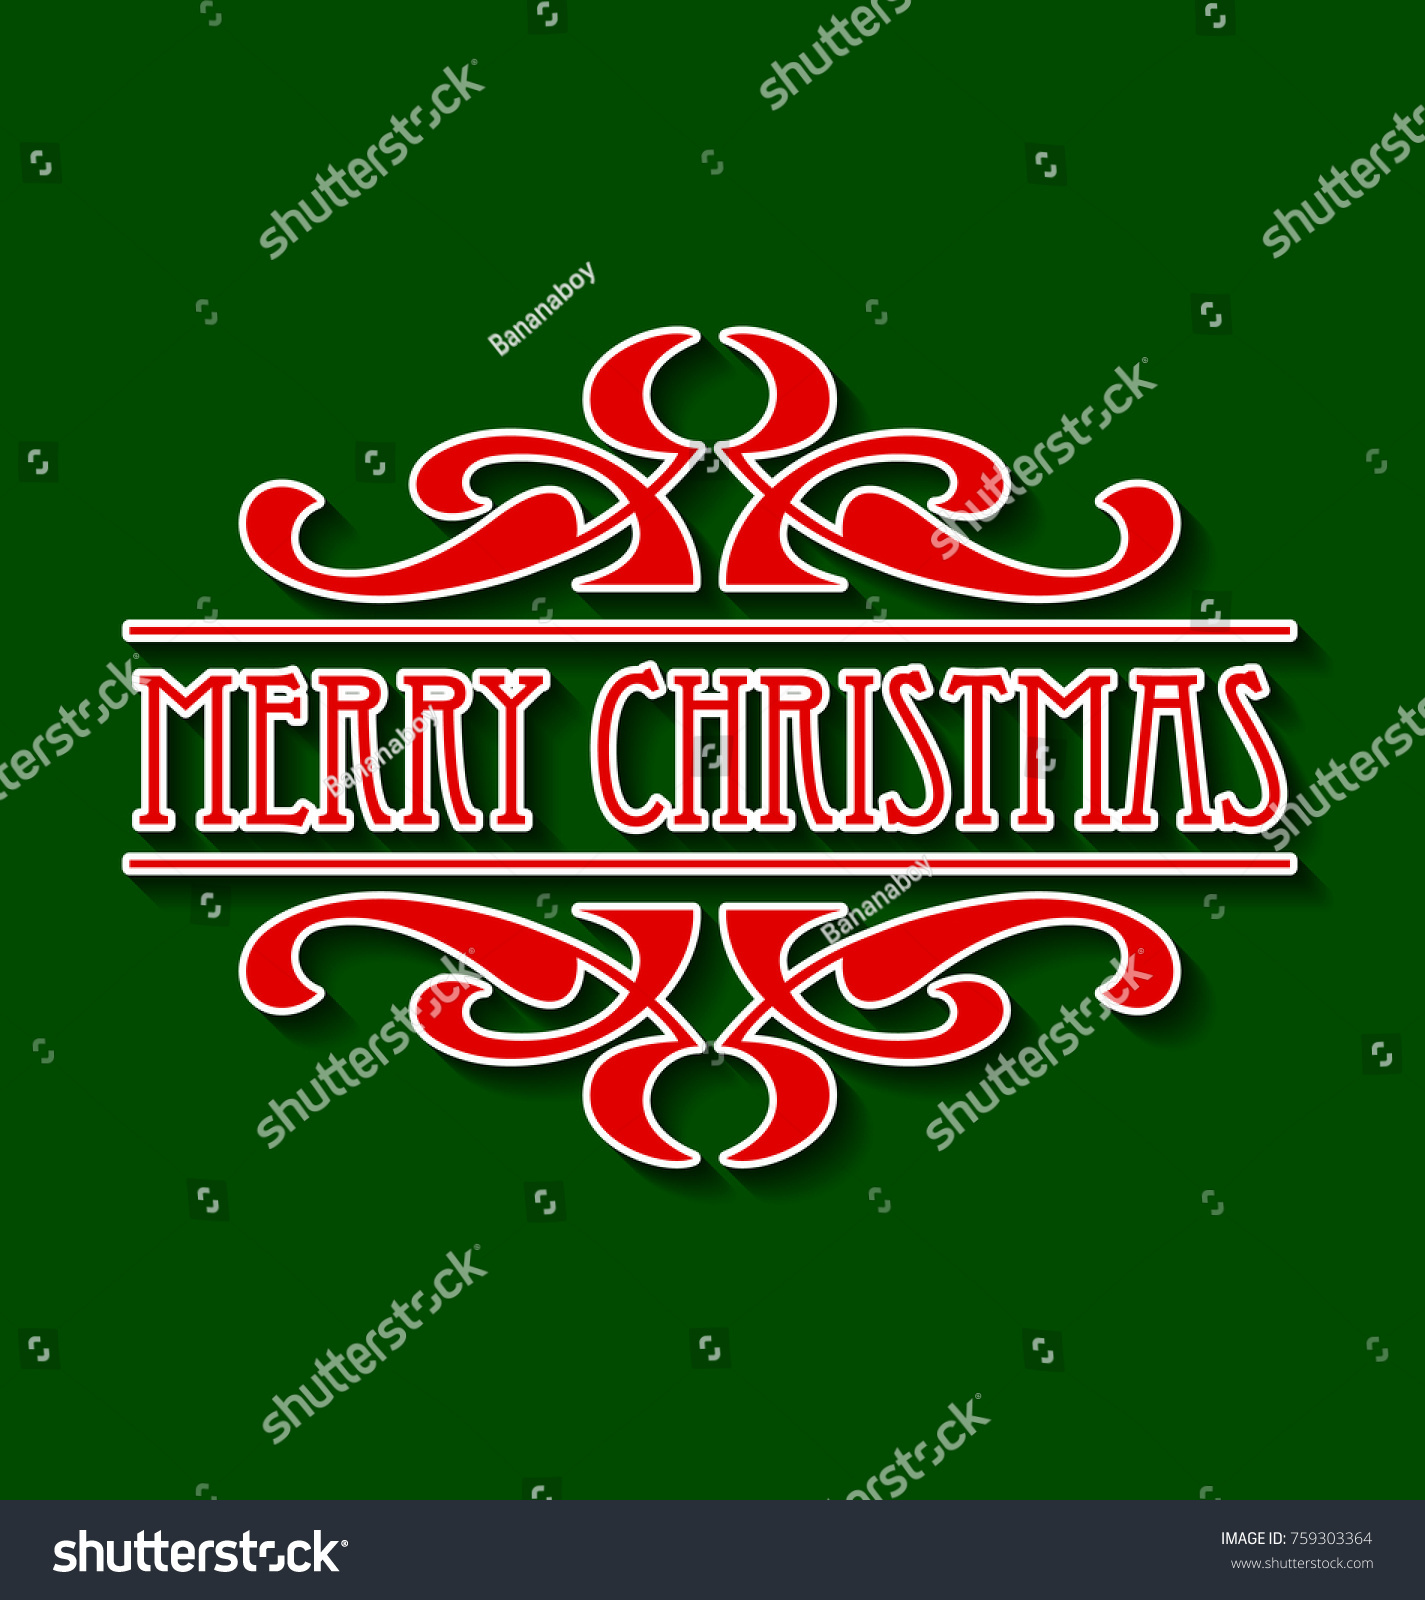 Old Fashioned Vintage Retro Merry Christmas Stock Vector (Royalty ...